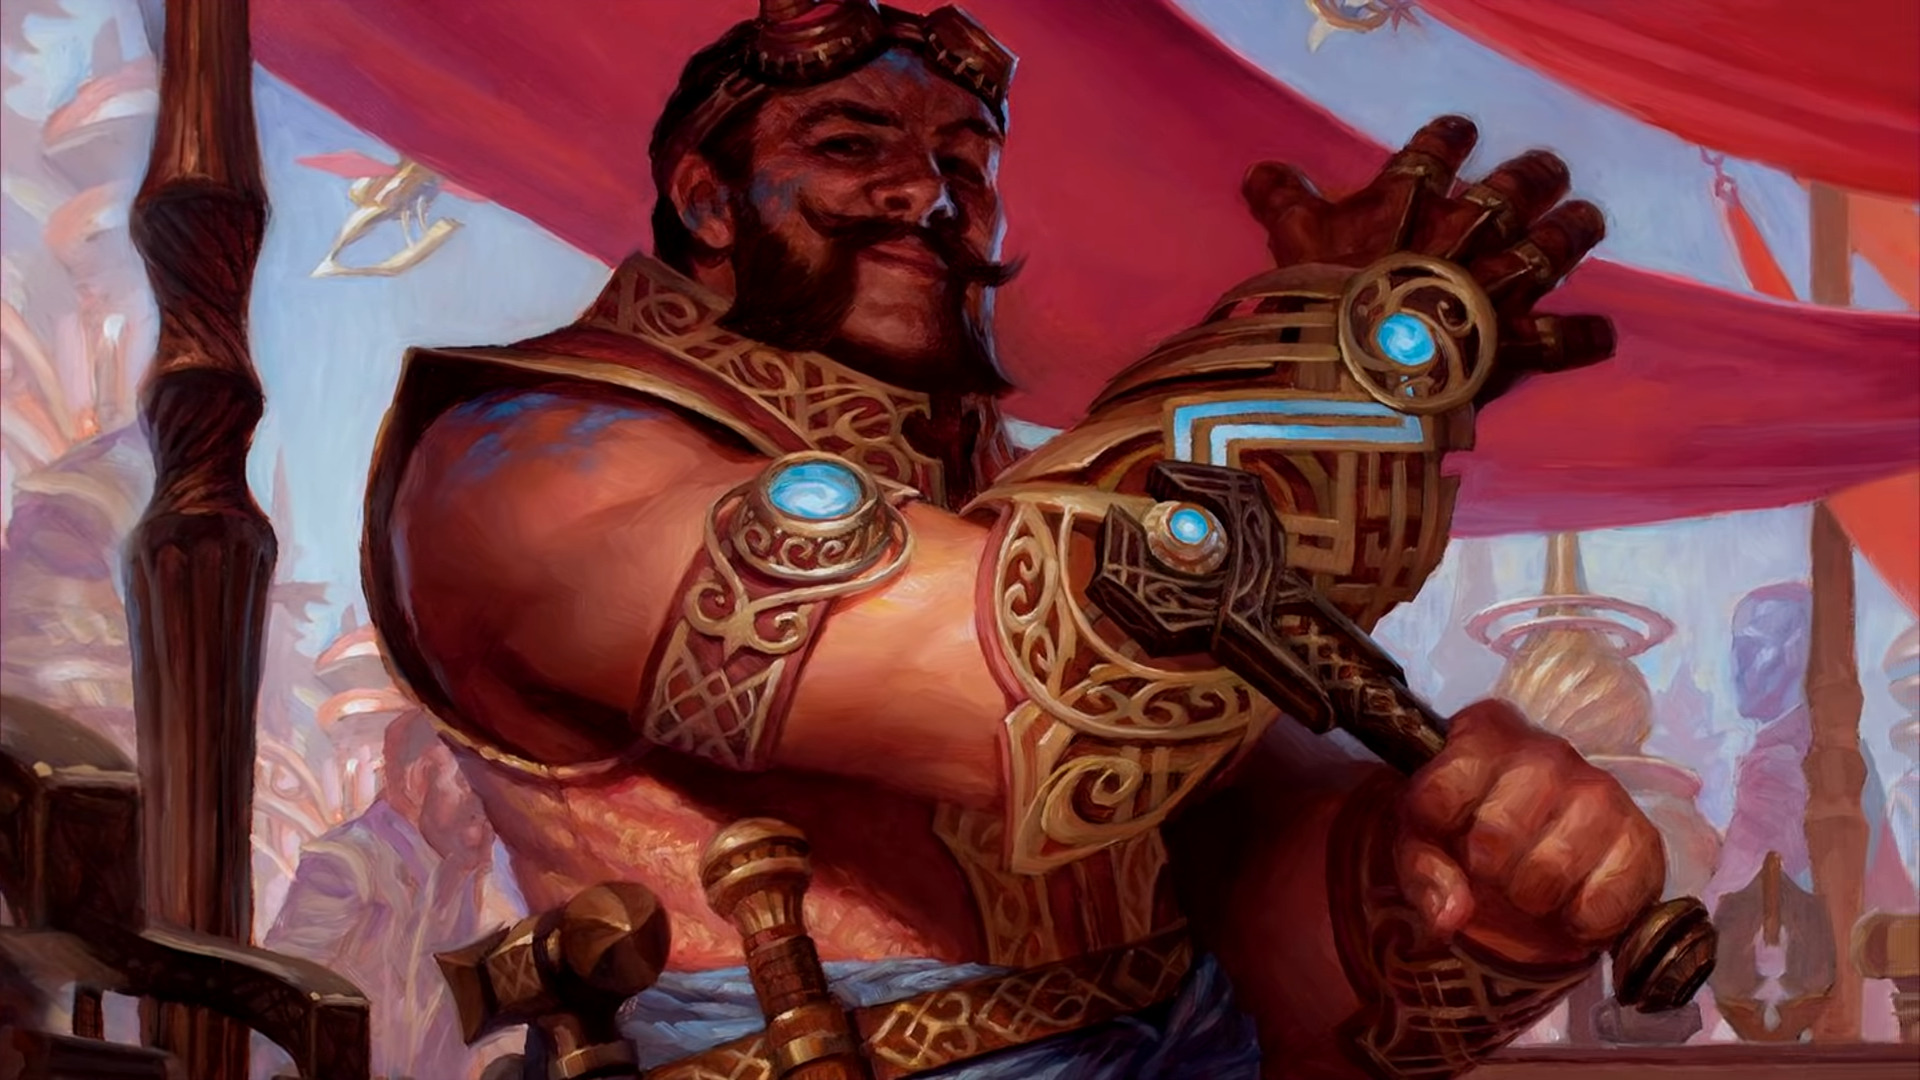 Unearthed Arcana Feats 2020 (Pt. 1): Unearthed Arcana's Newest Playtest Material Adds Exciting Variety To D&D 5E